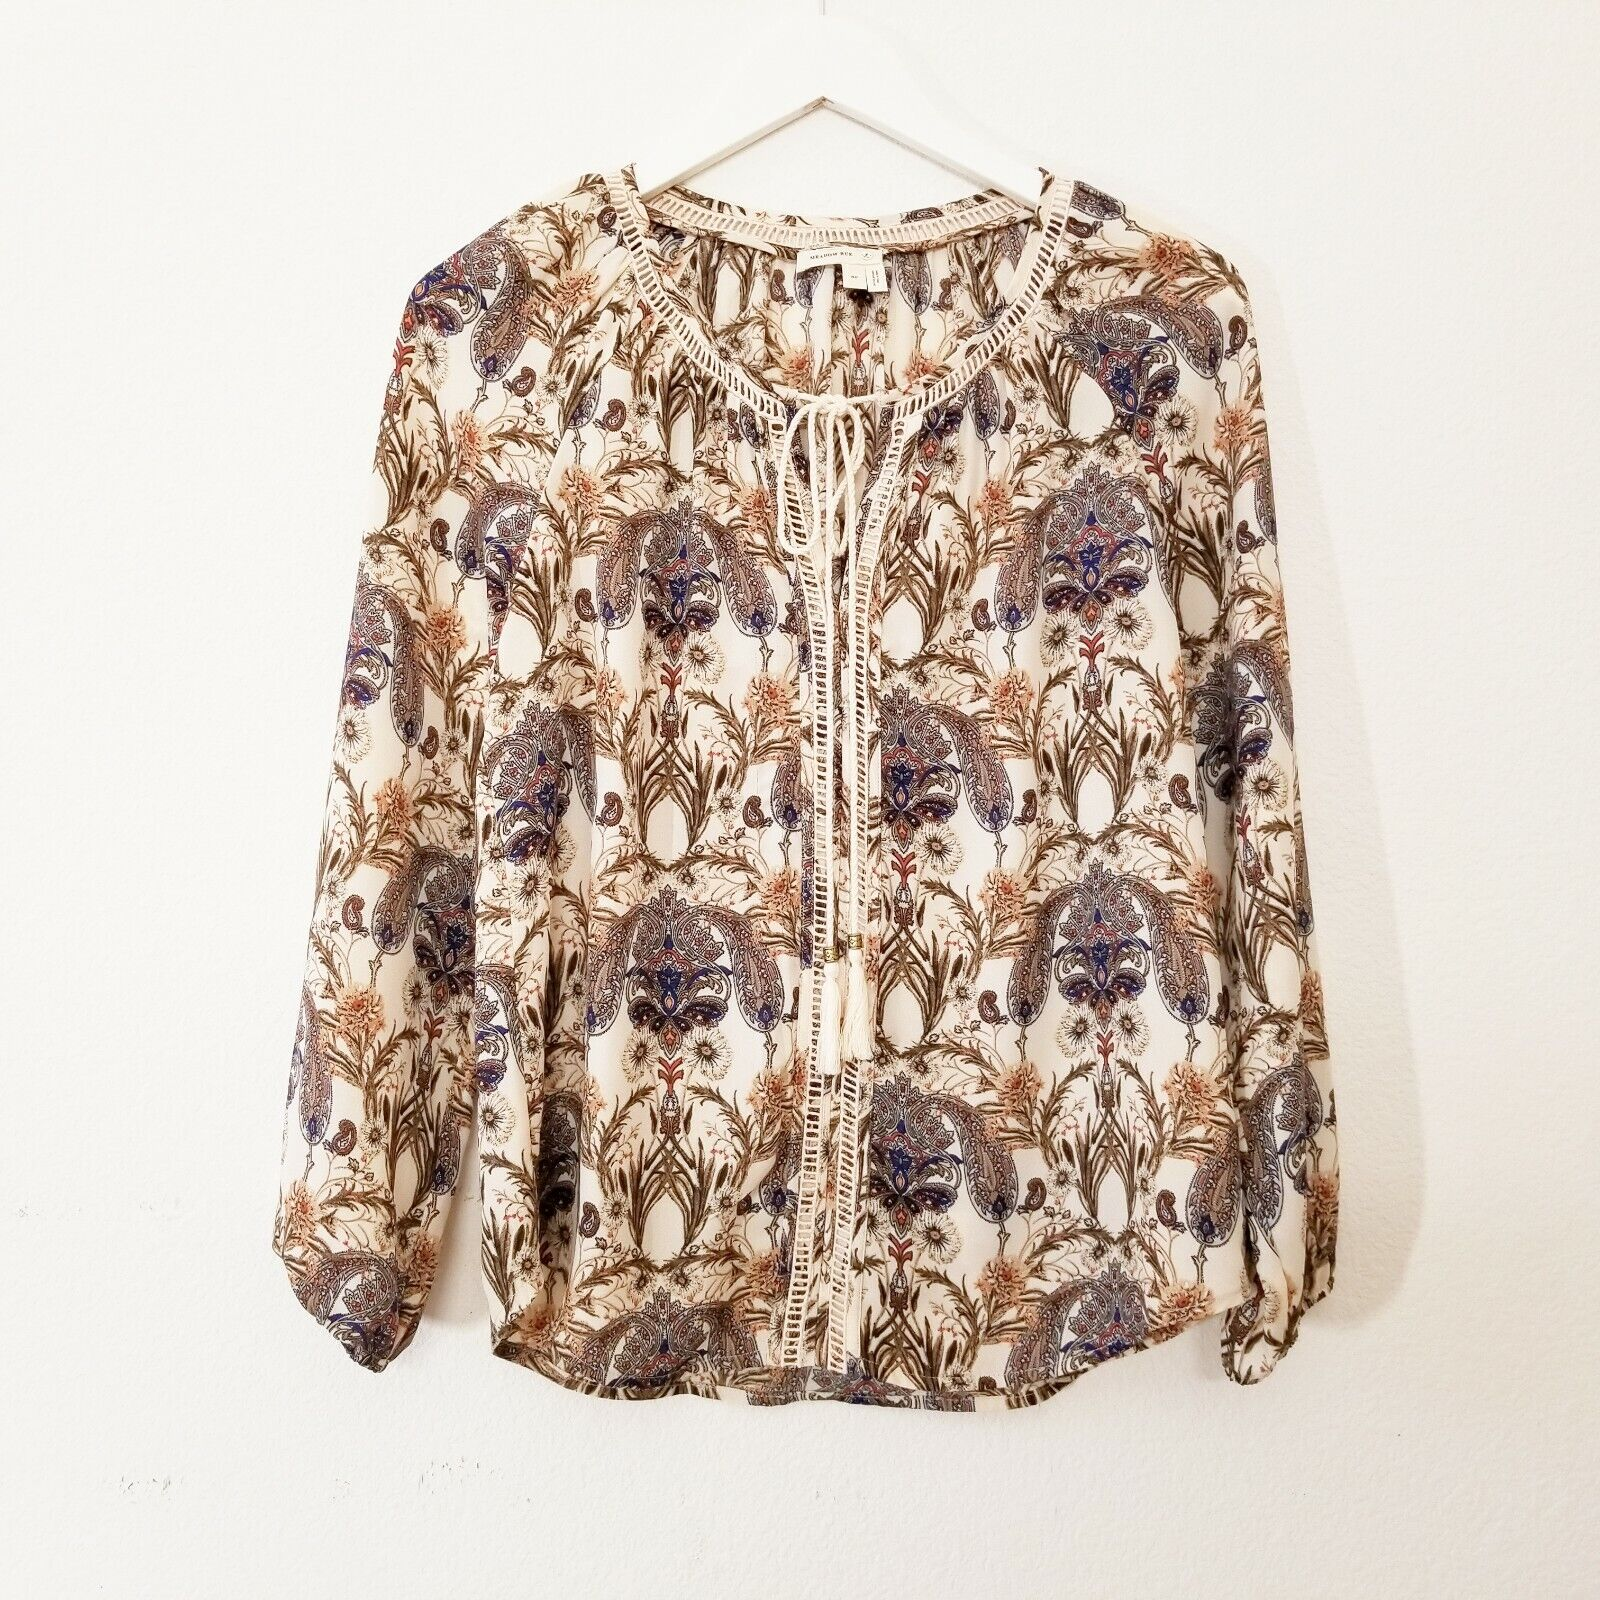 Meadow Rue Anthropologie Myrtle Peasant Blouse Cream Floral Paisley S